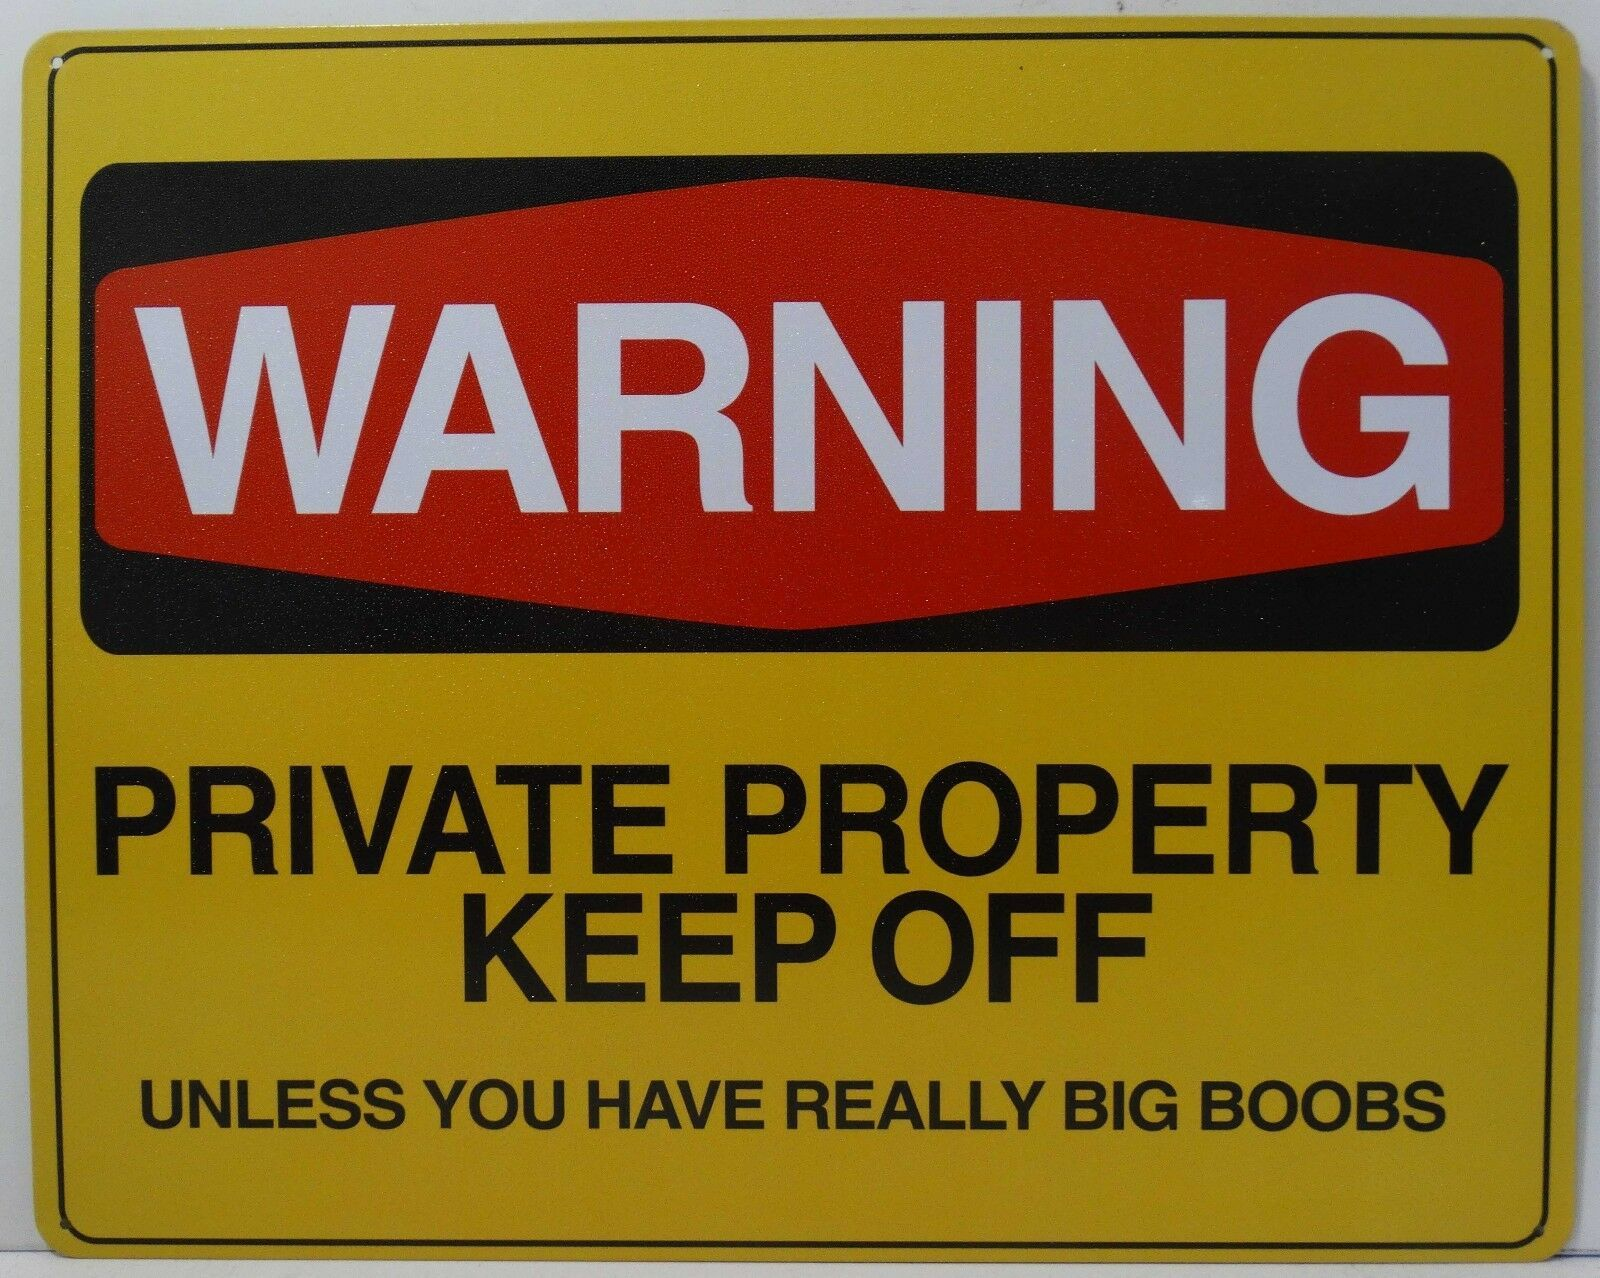 Warning Private Property Keep Off Unless You Have Big Boobs Humor Metal Sign